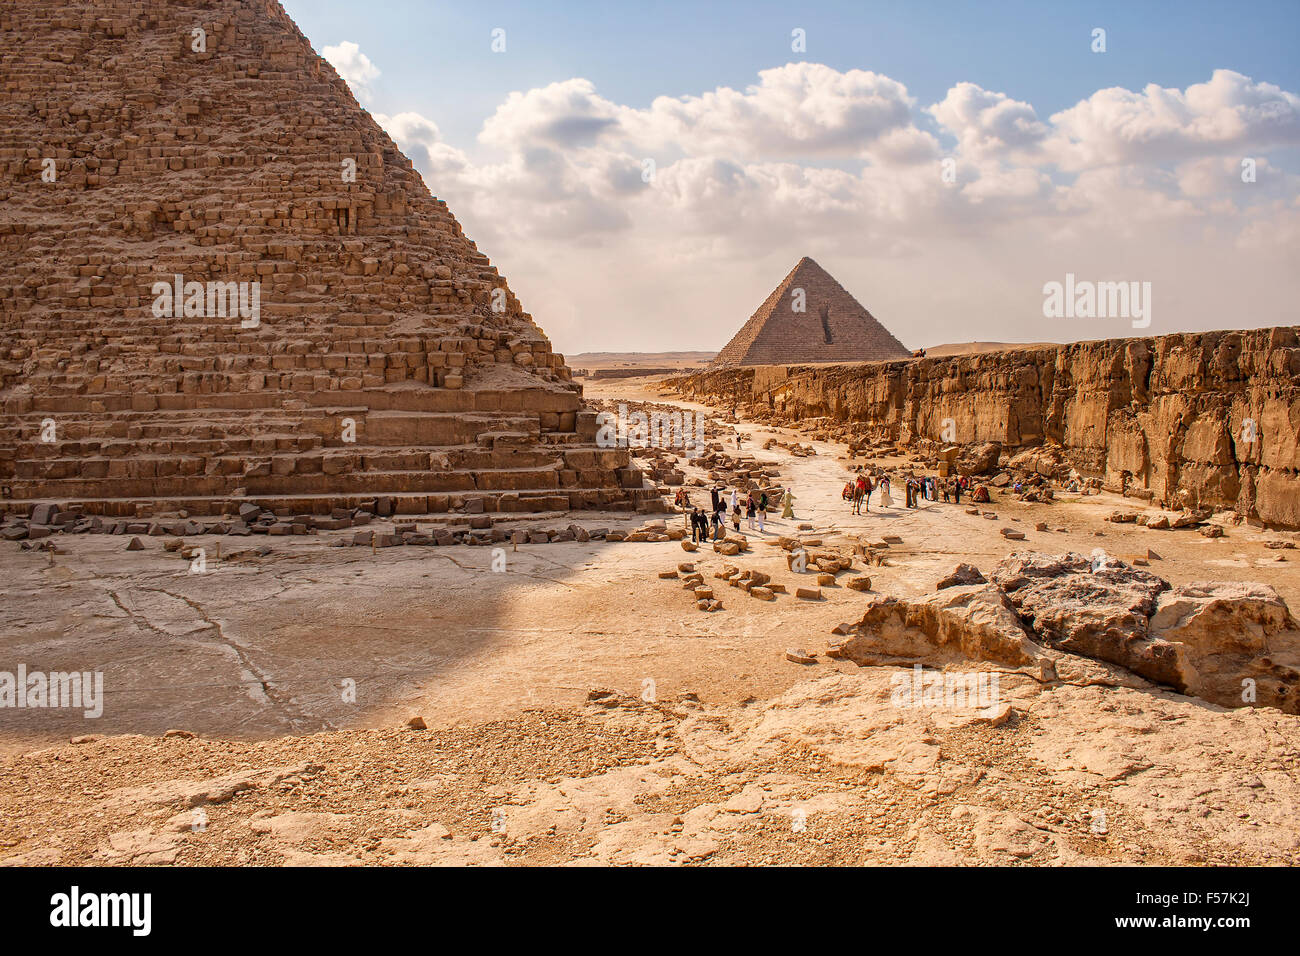 Image of the pyramids of Giza in Cairo, Egypt. - Stock Image